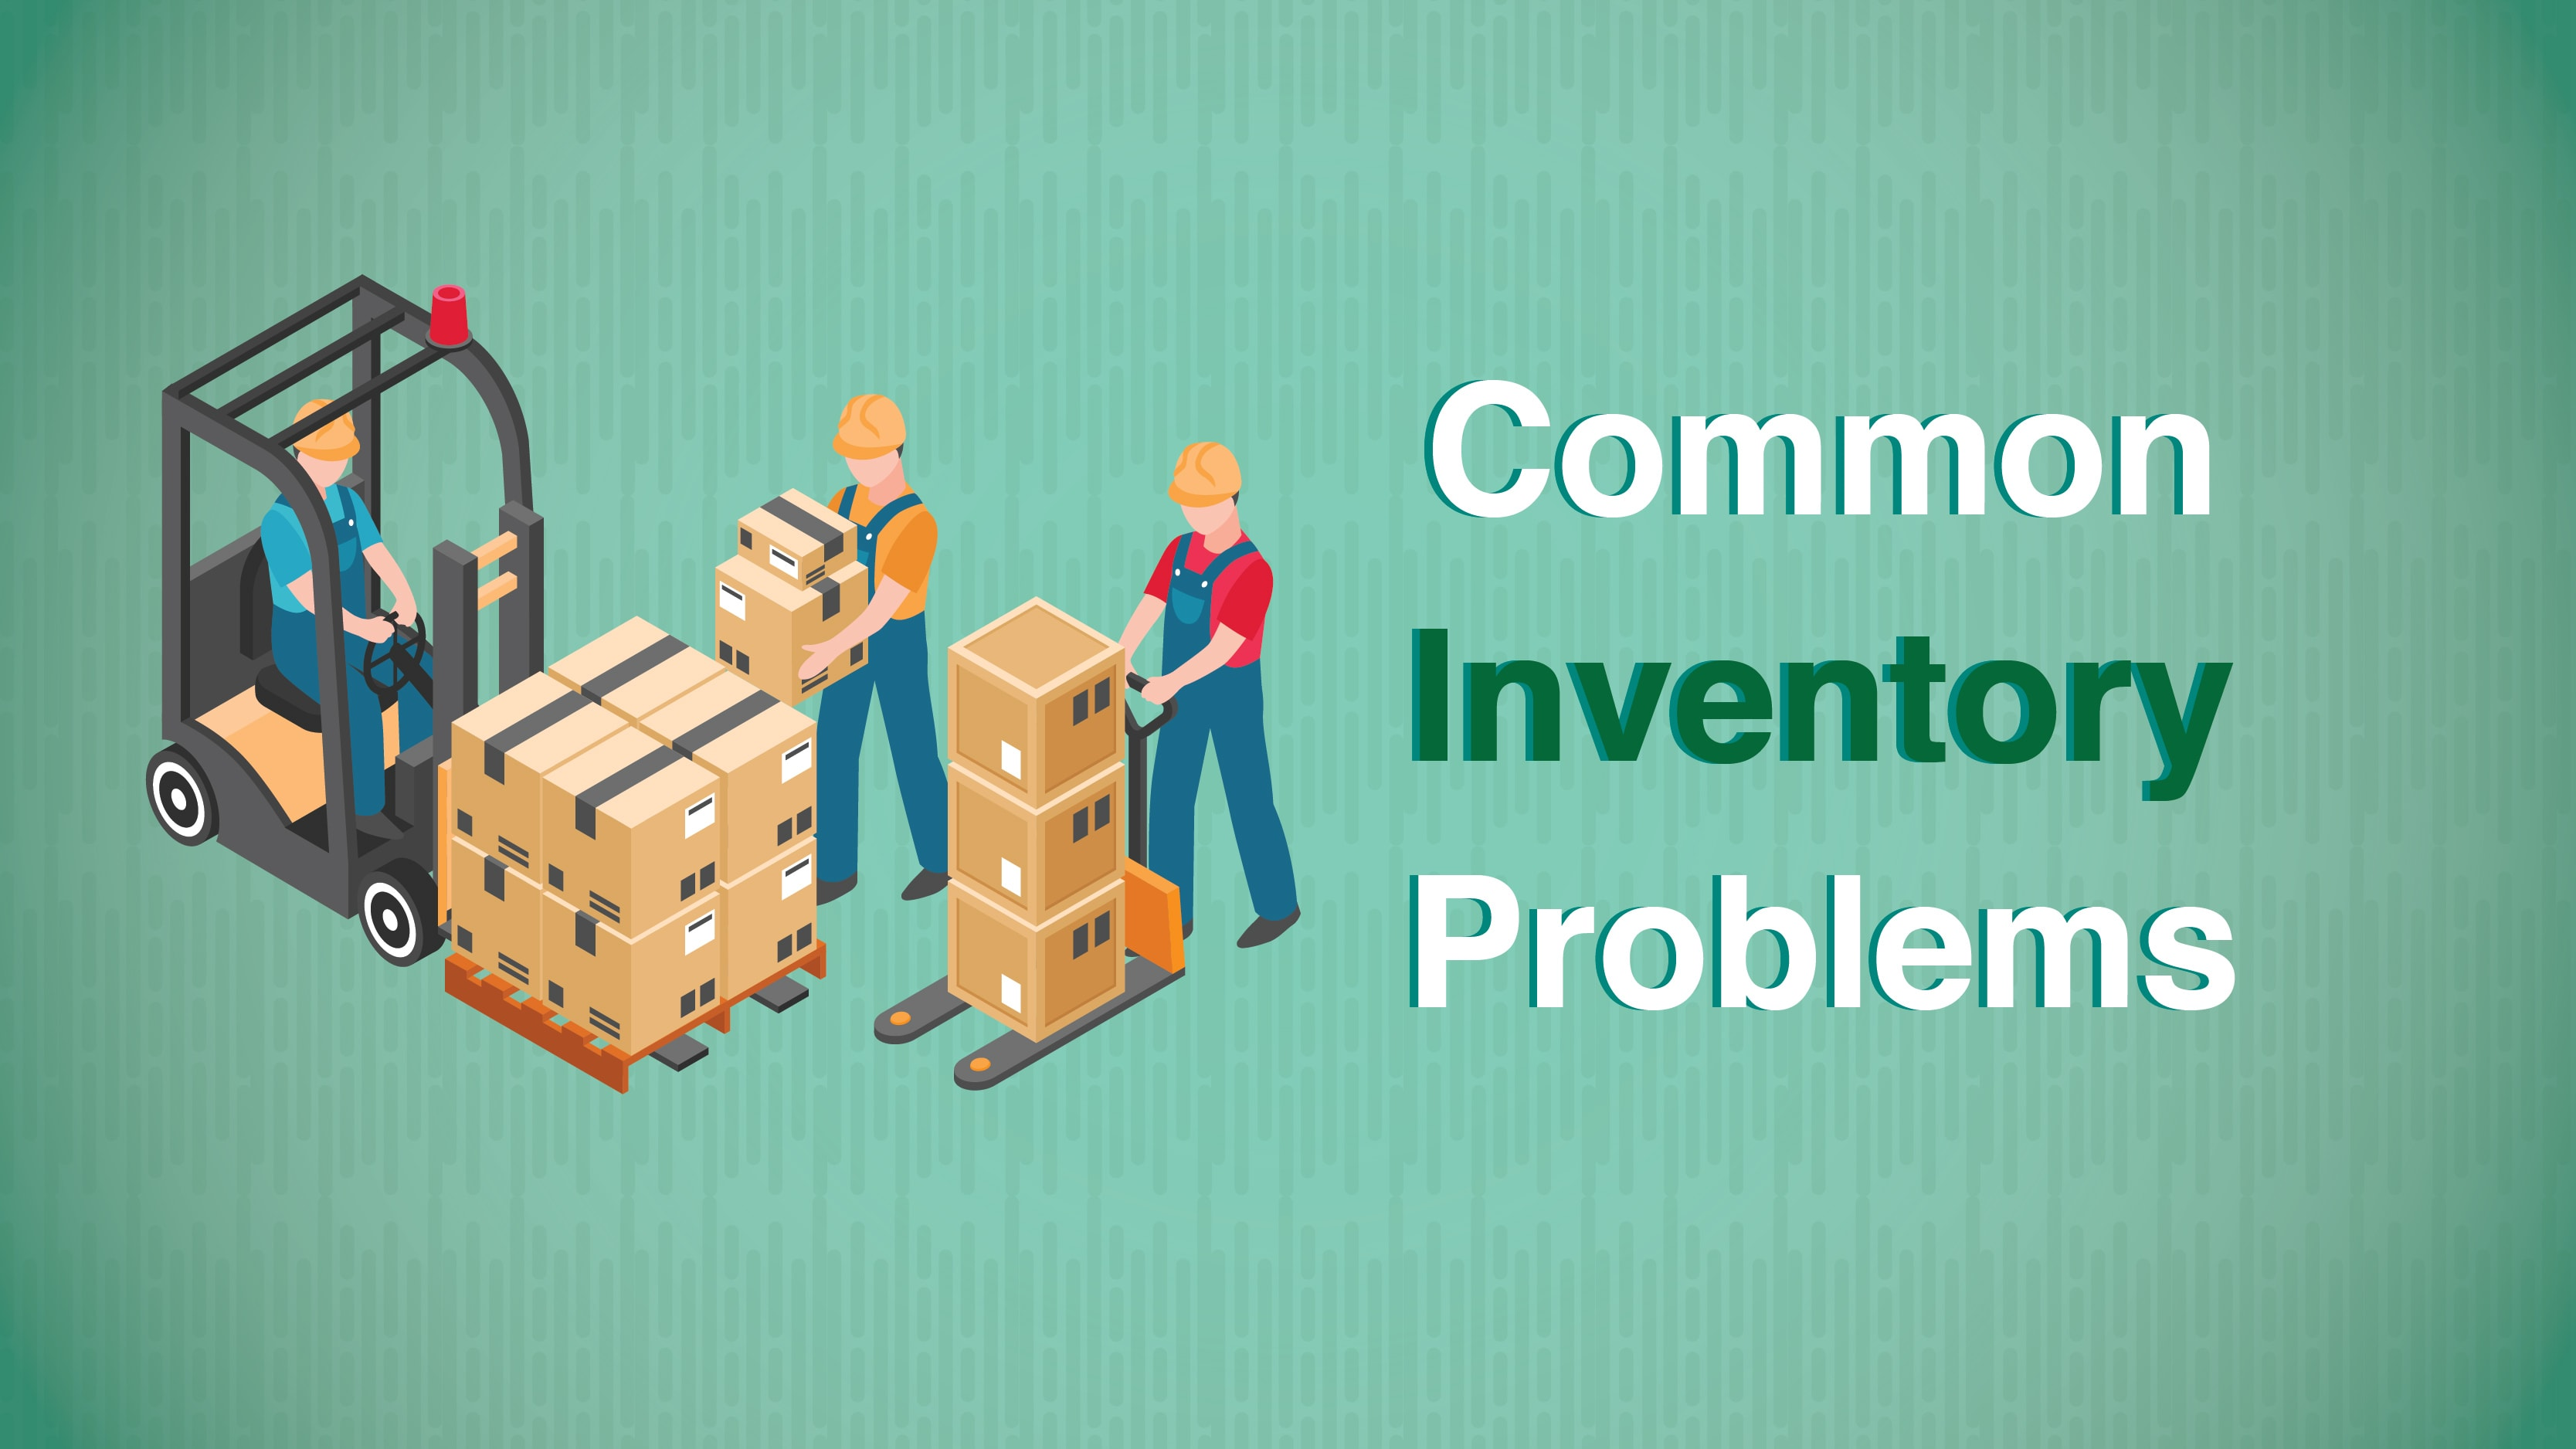 7 Common Inventory Problems and Solutions to Fix Them